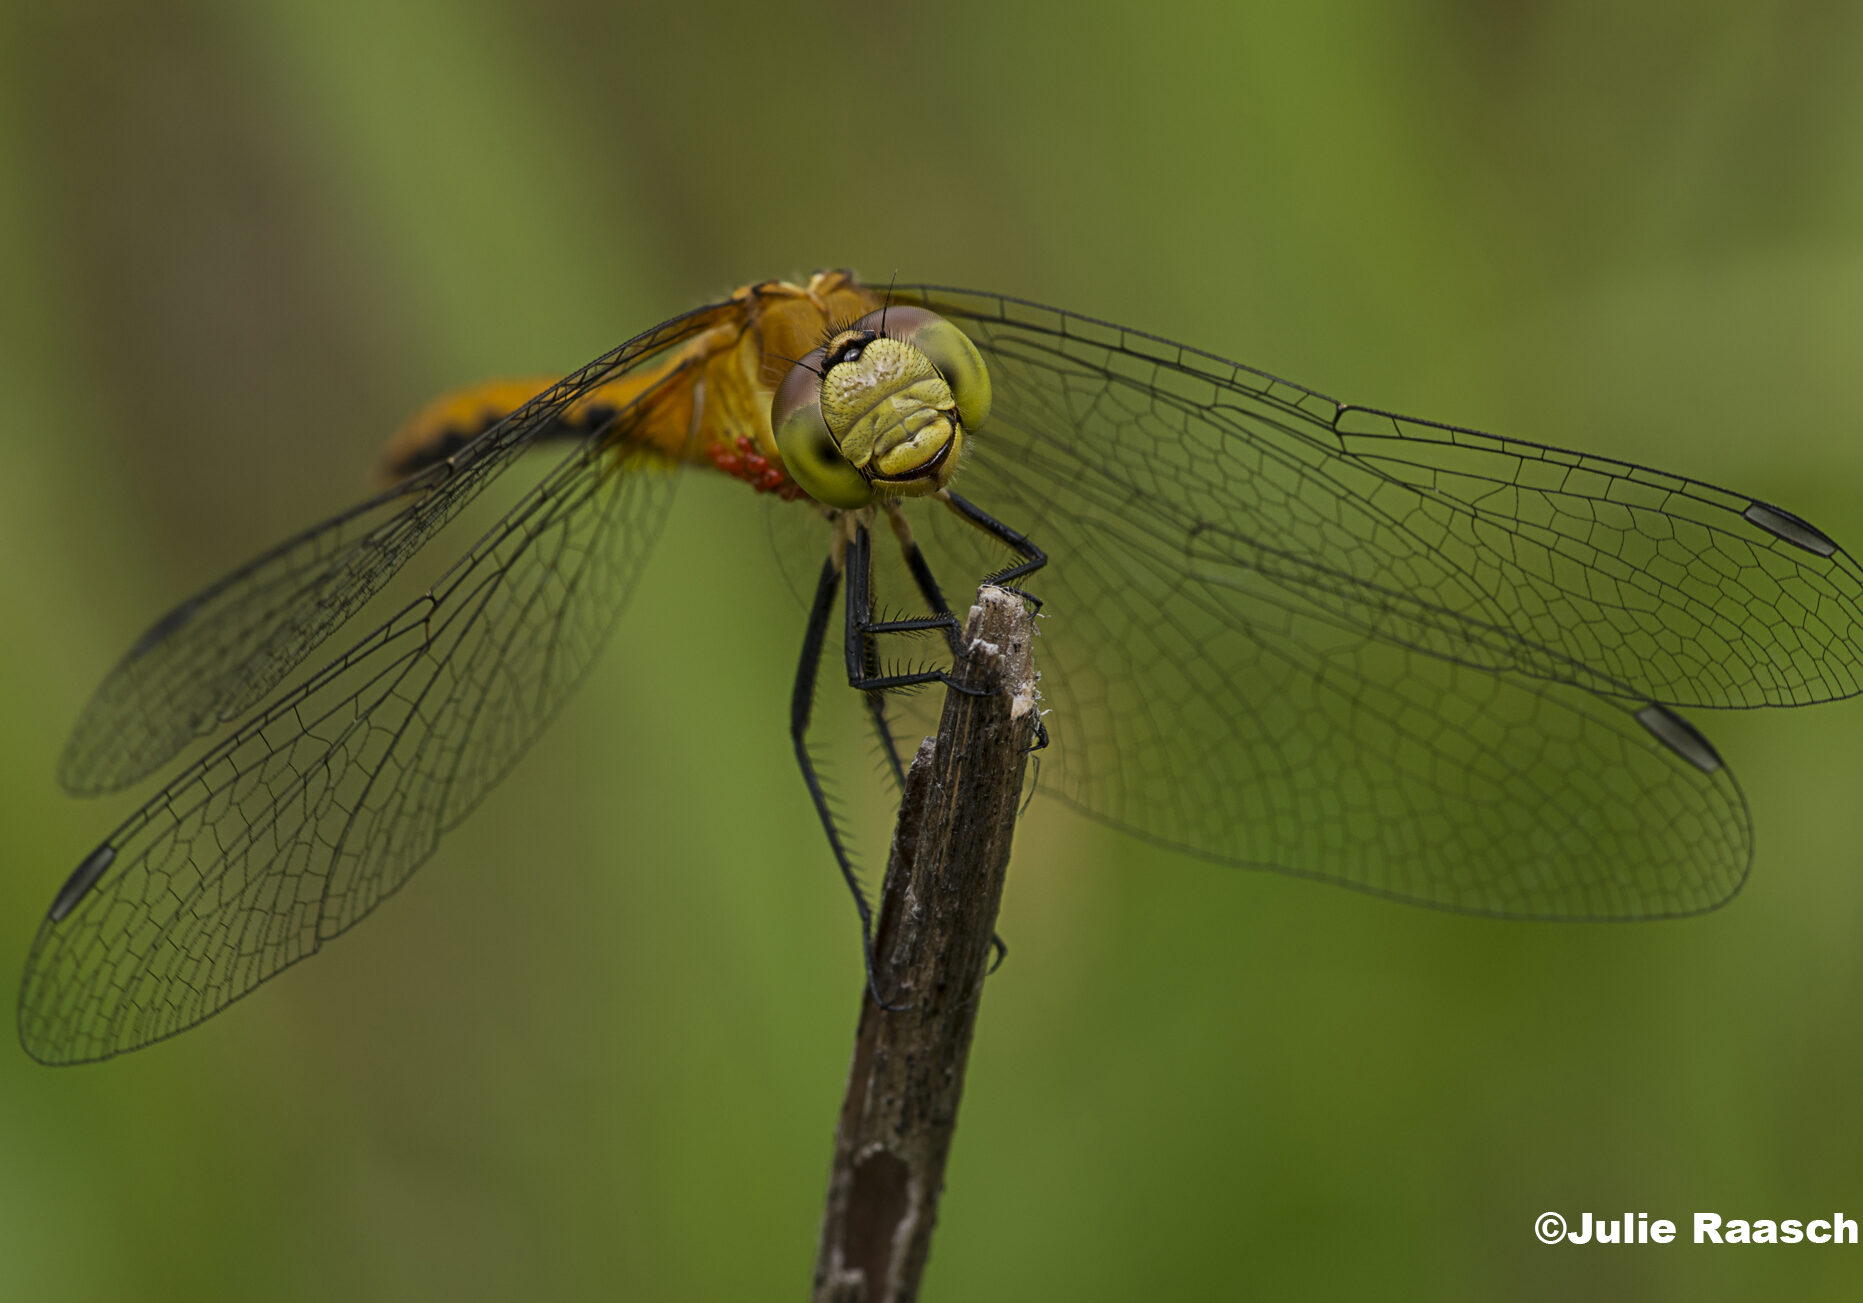 A dragonfly perches on a stick